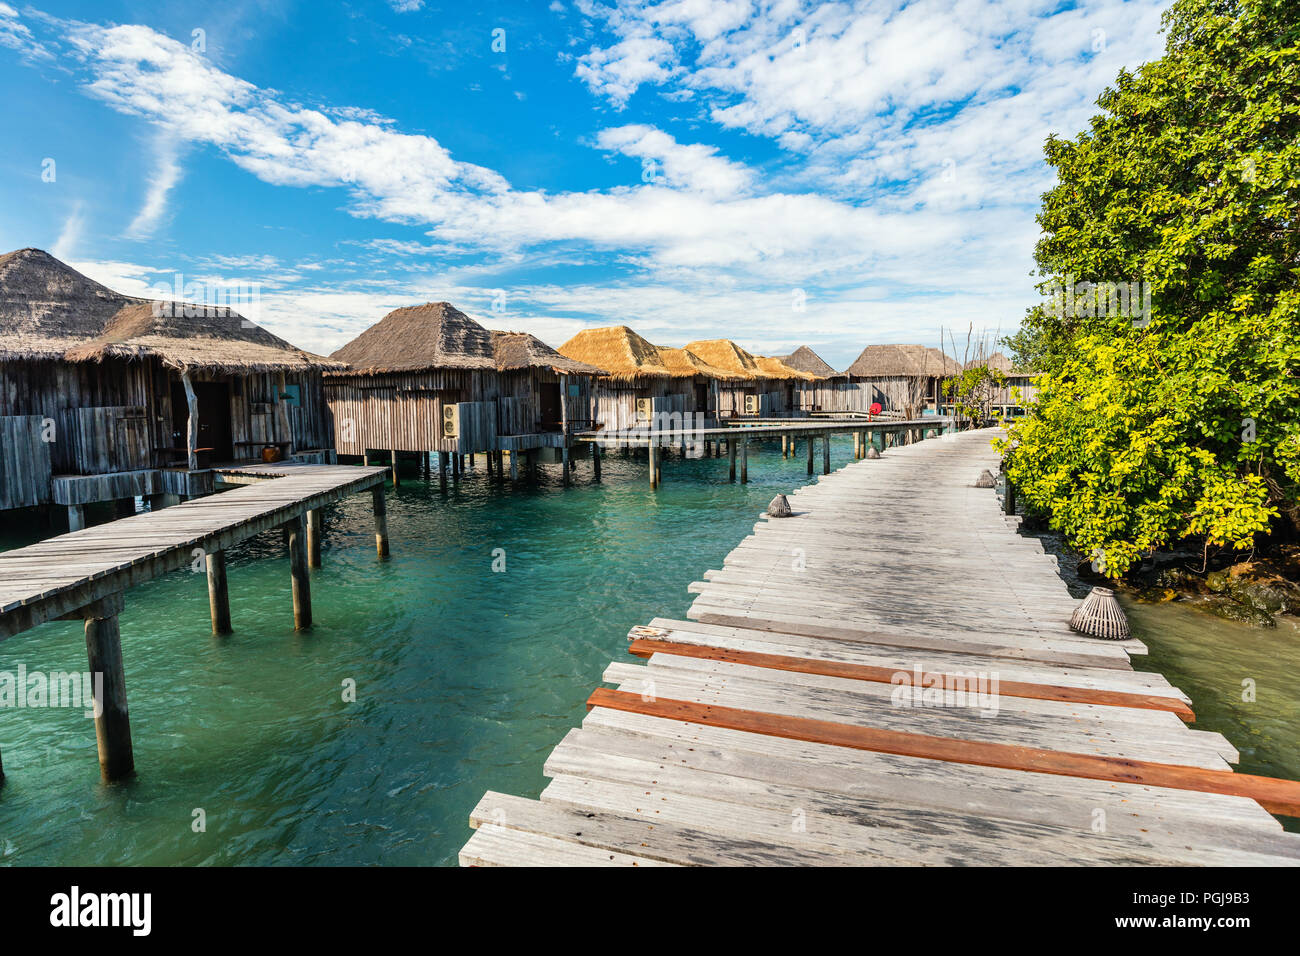 Resort bungalows over tropical water in Cambodia - Stock Image